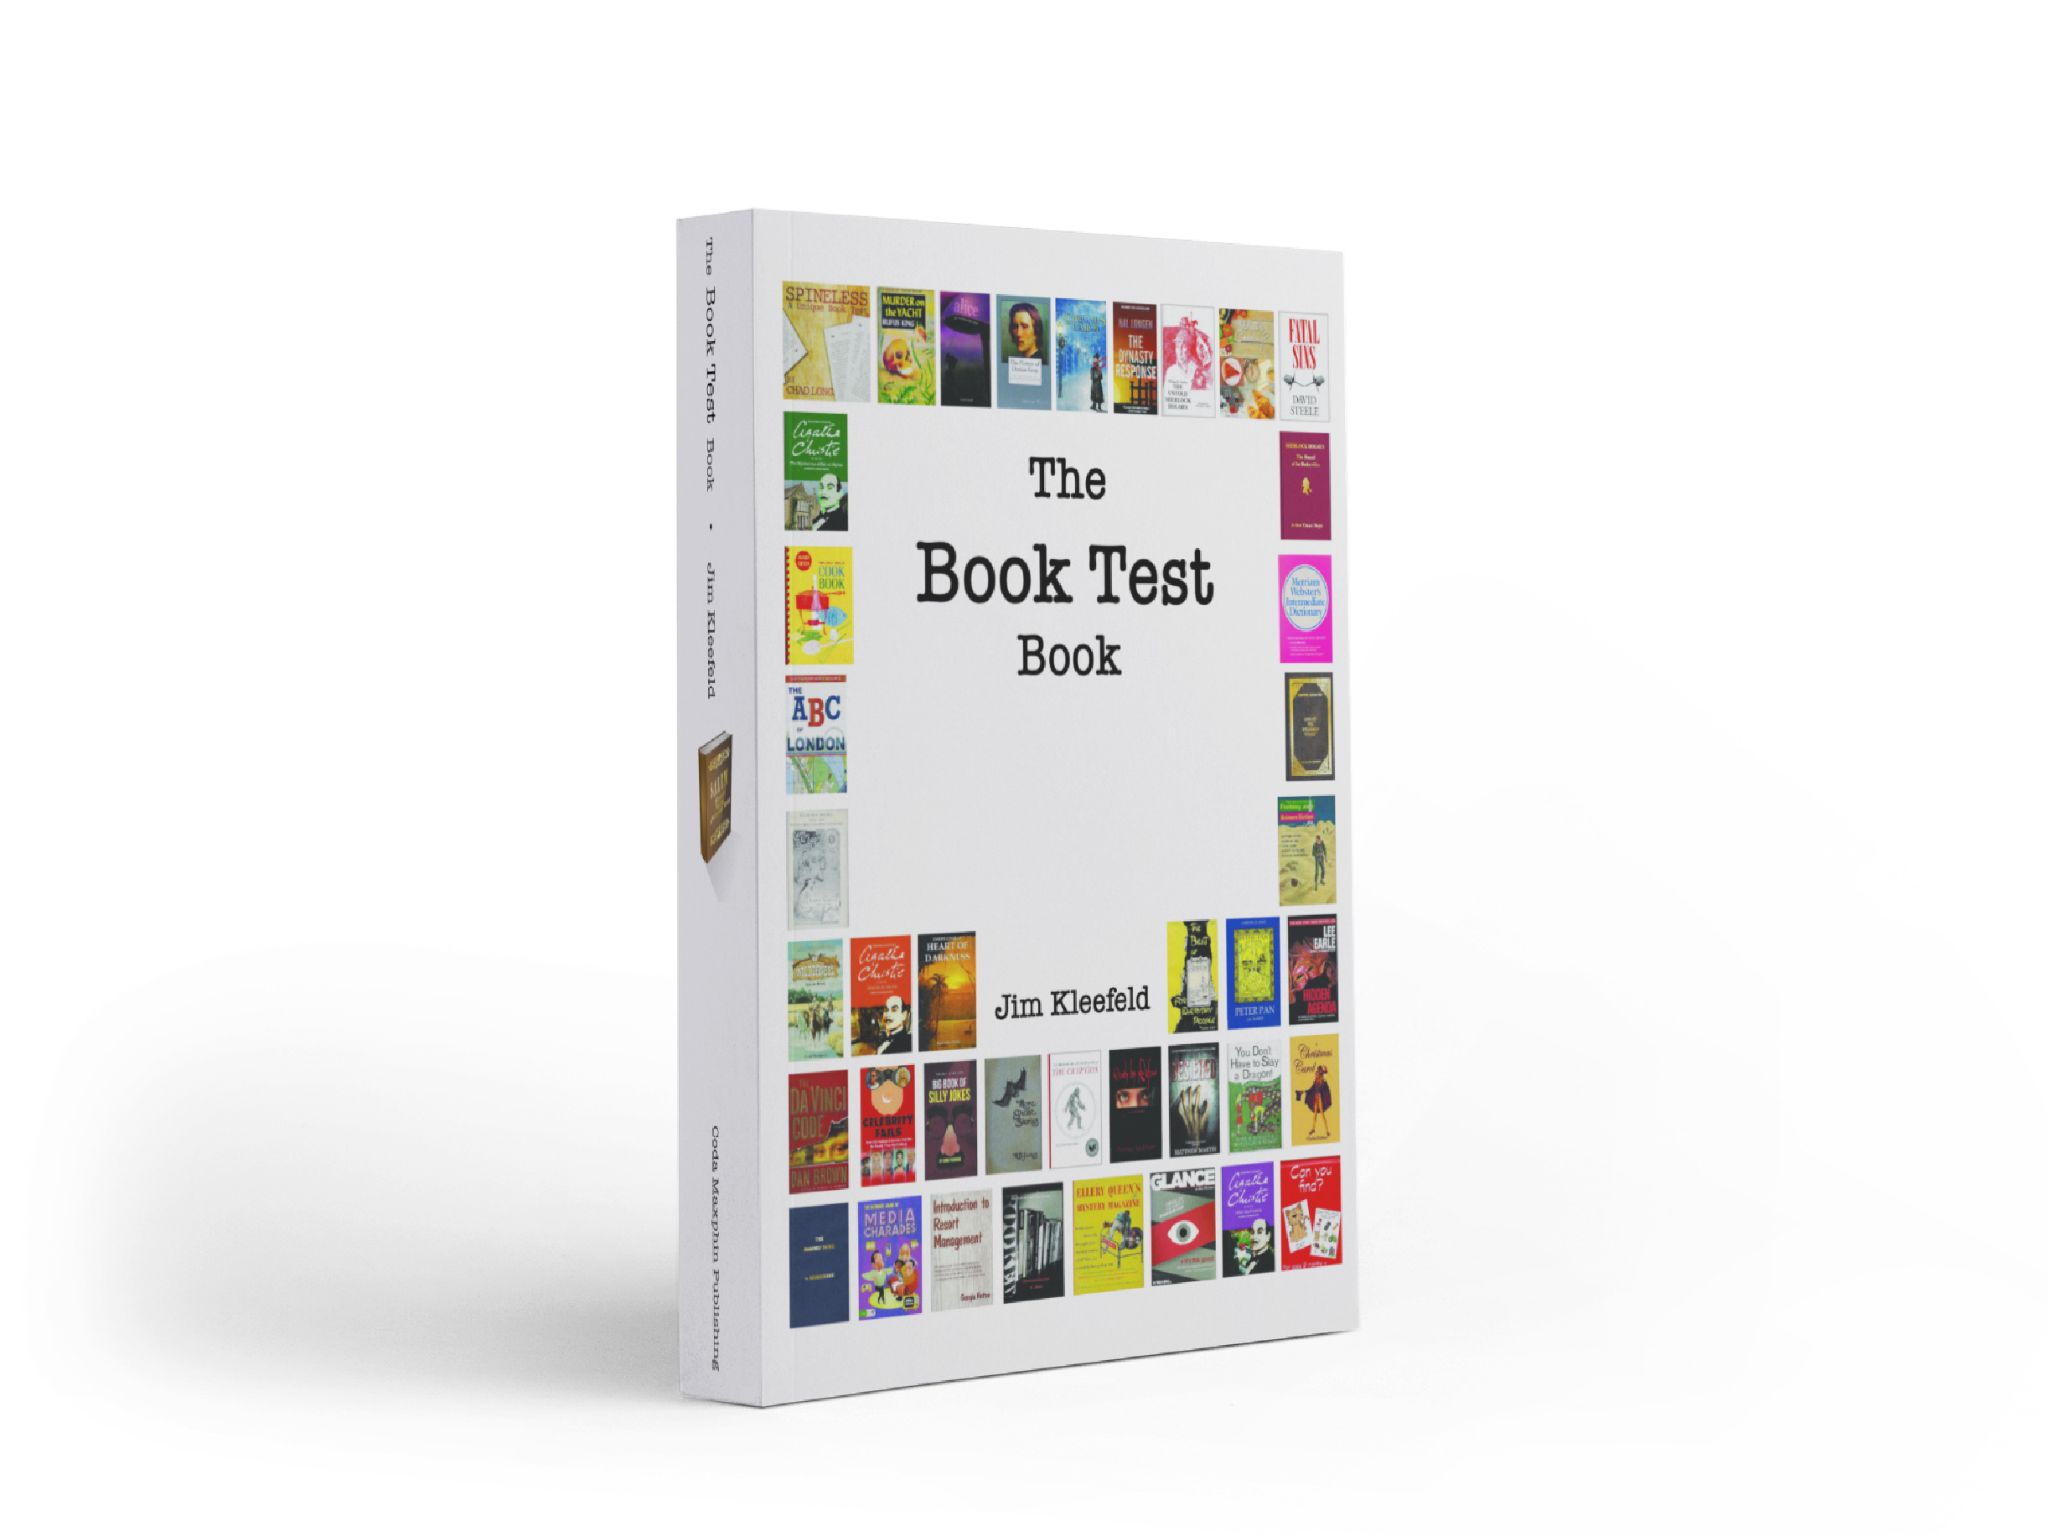 The Book Test Book – Jim Kleefeld